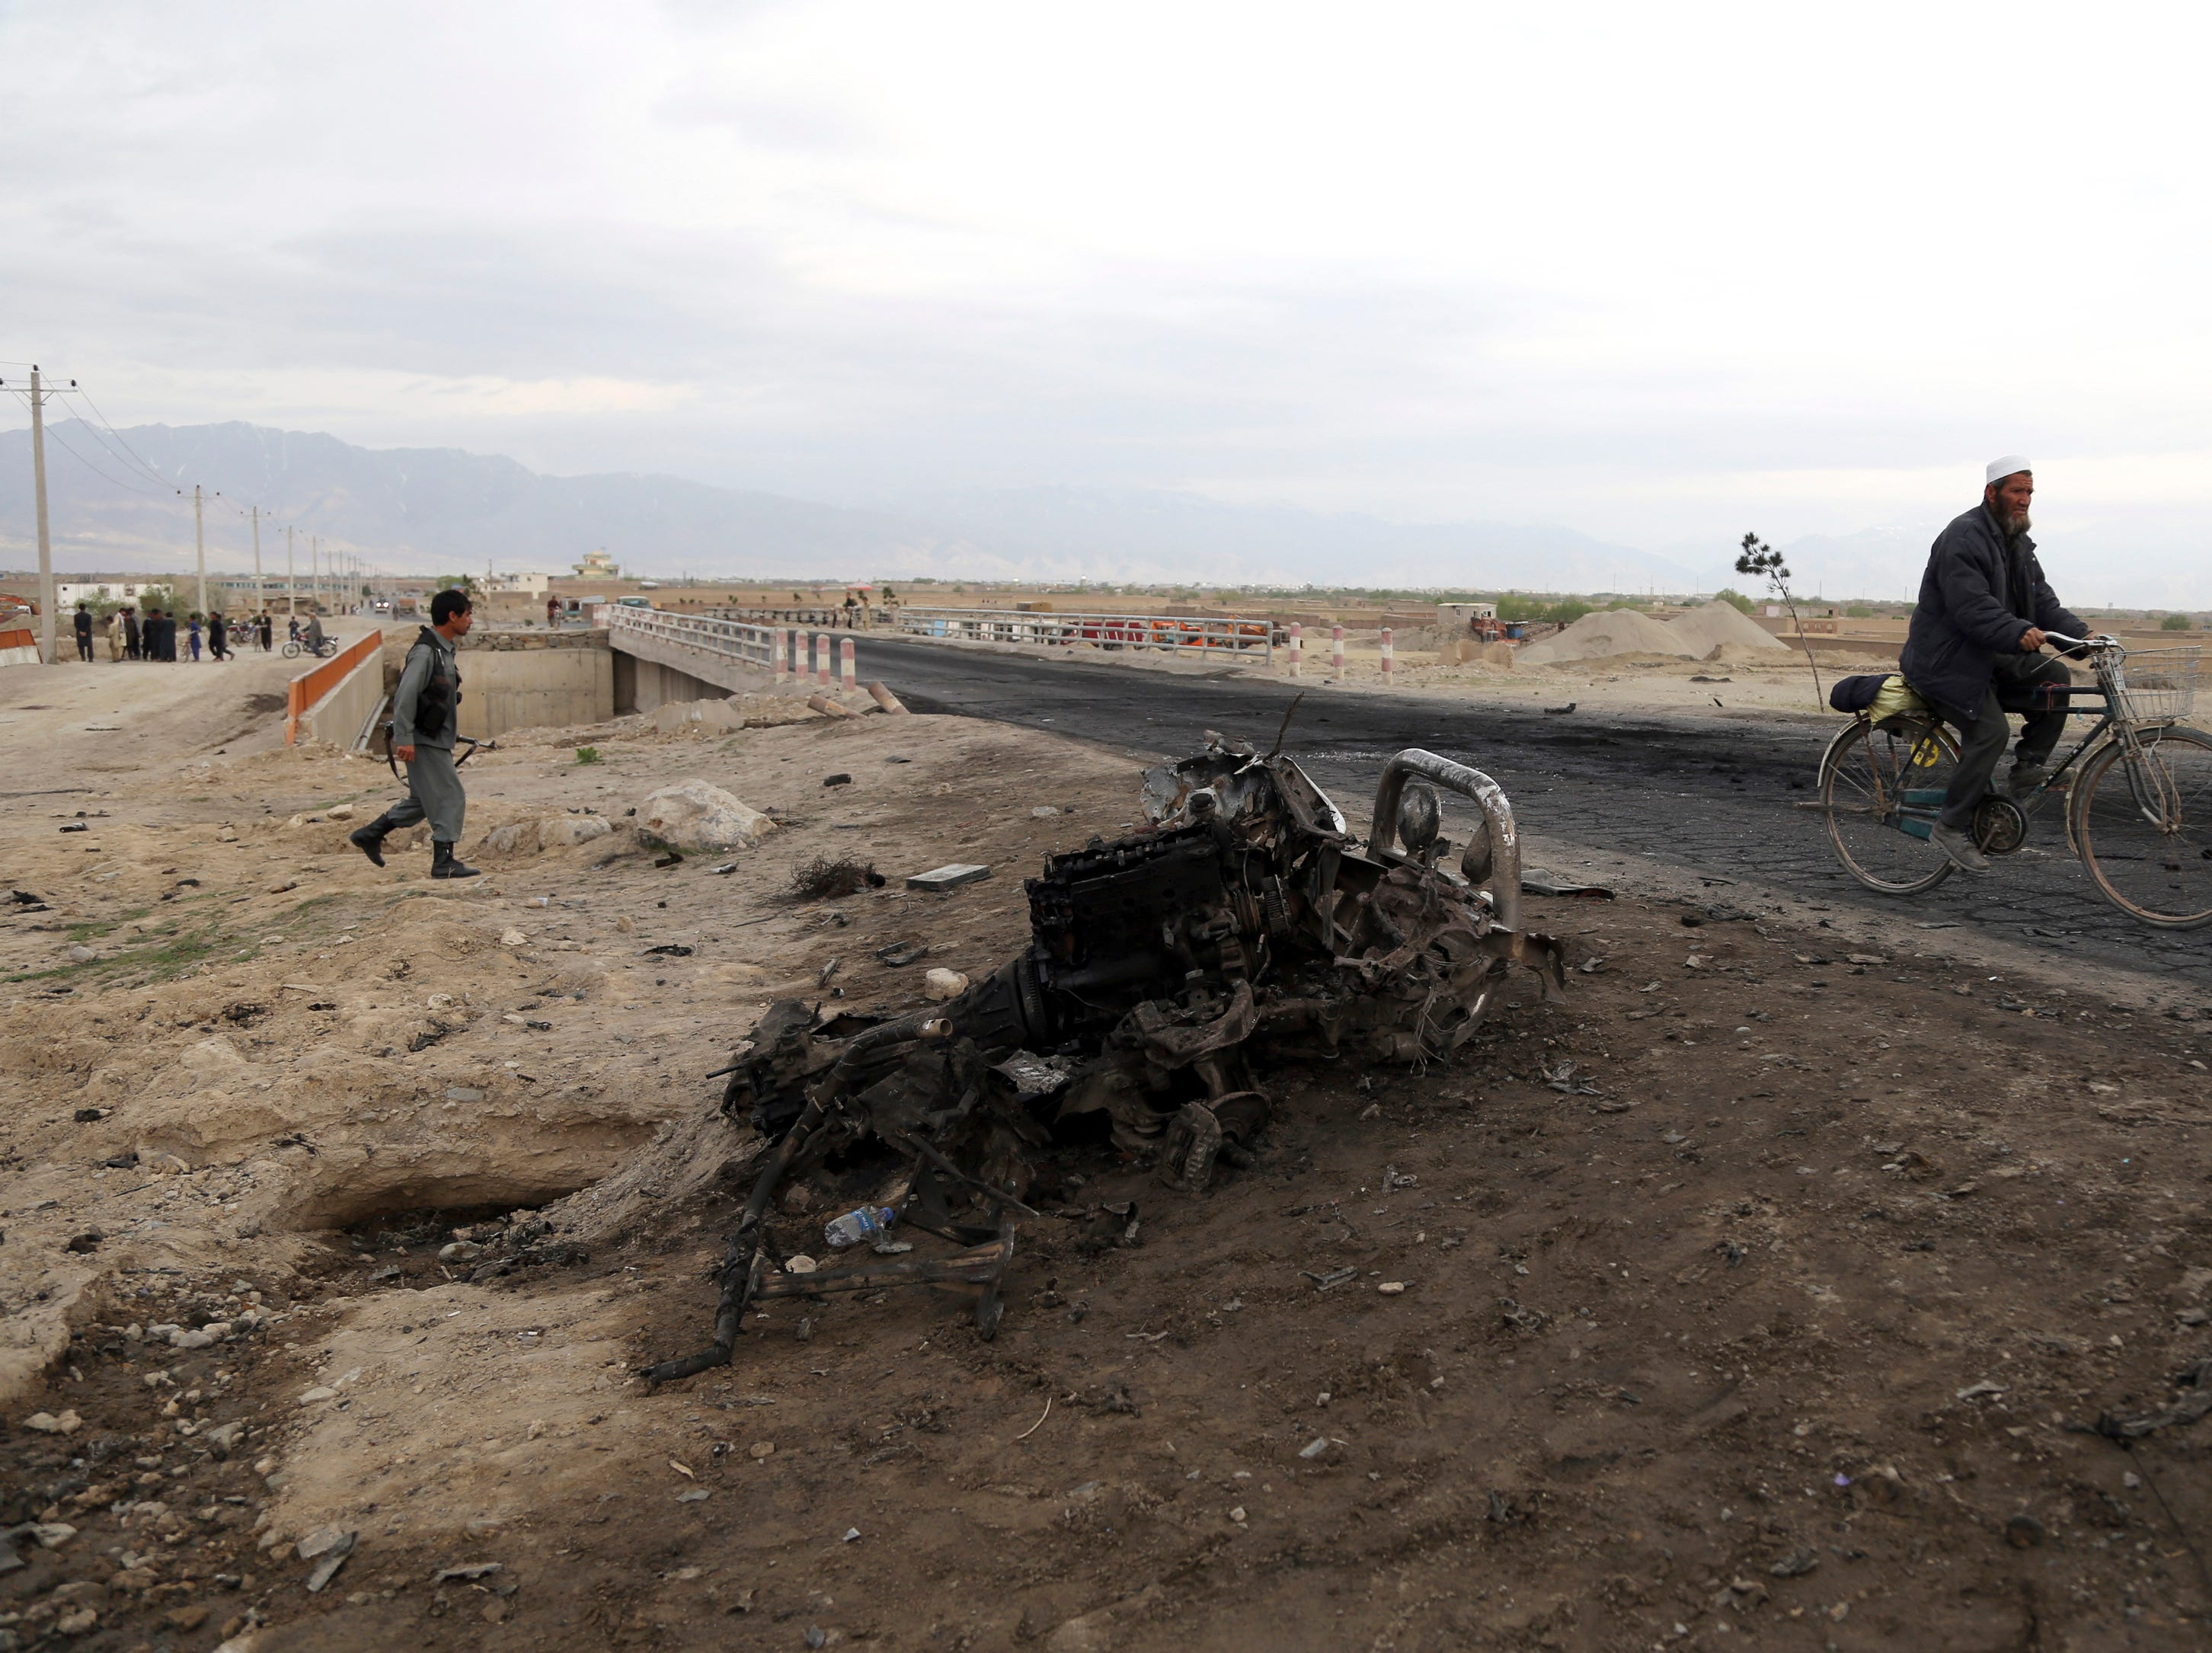 A man cycles past the site of Monday's suicide attack near the Bagram Air Base, north of Kabul, Afghanistan, Tuesday, April 9, 2019. Three American service members were killed when their convoy hit a roadside bomb on Monday near the main U.S. base in Afghanistan, the U.S. forces said. The Taliban claimed responsibility for the attack.